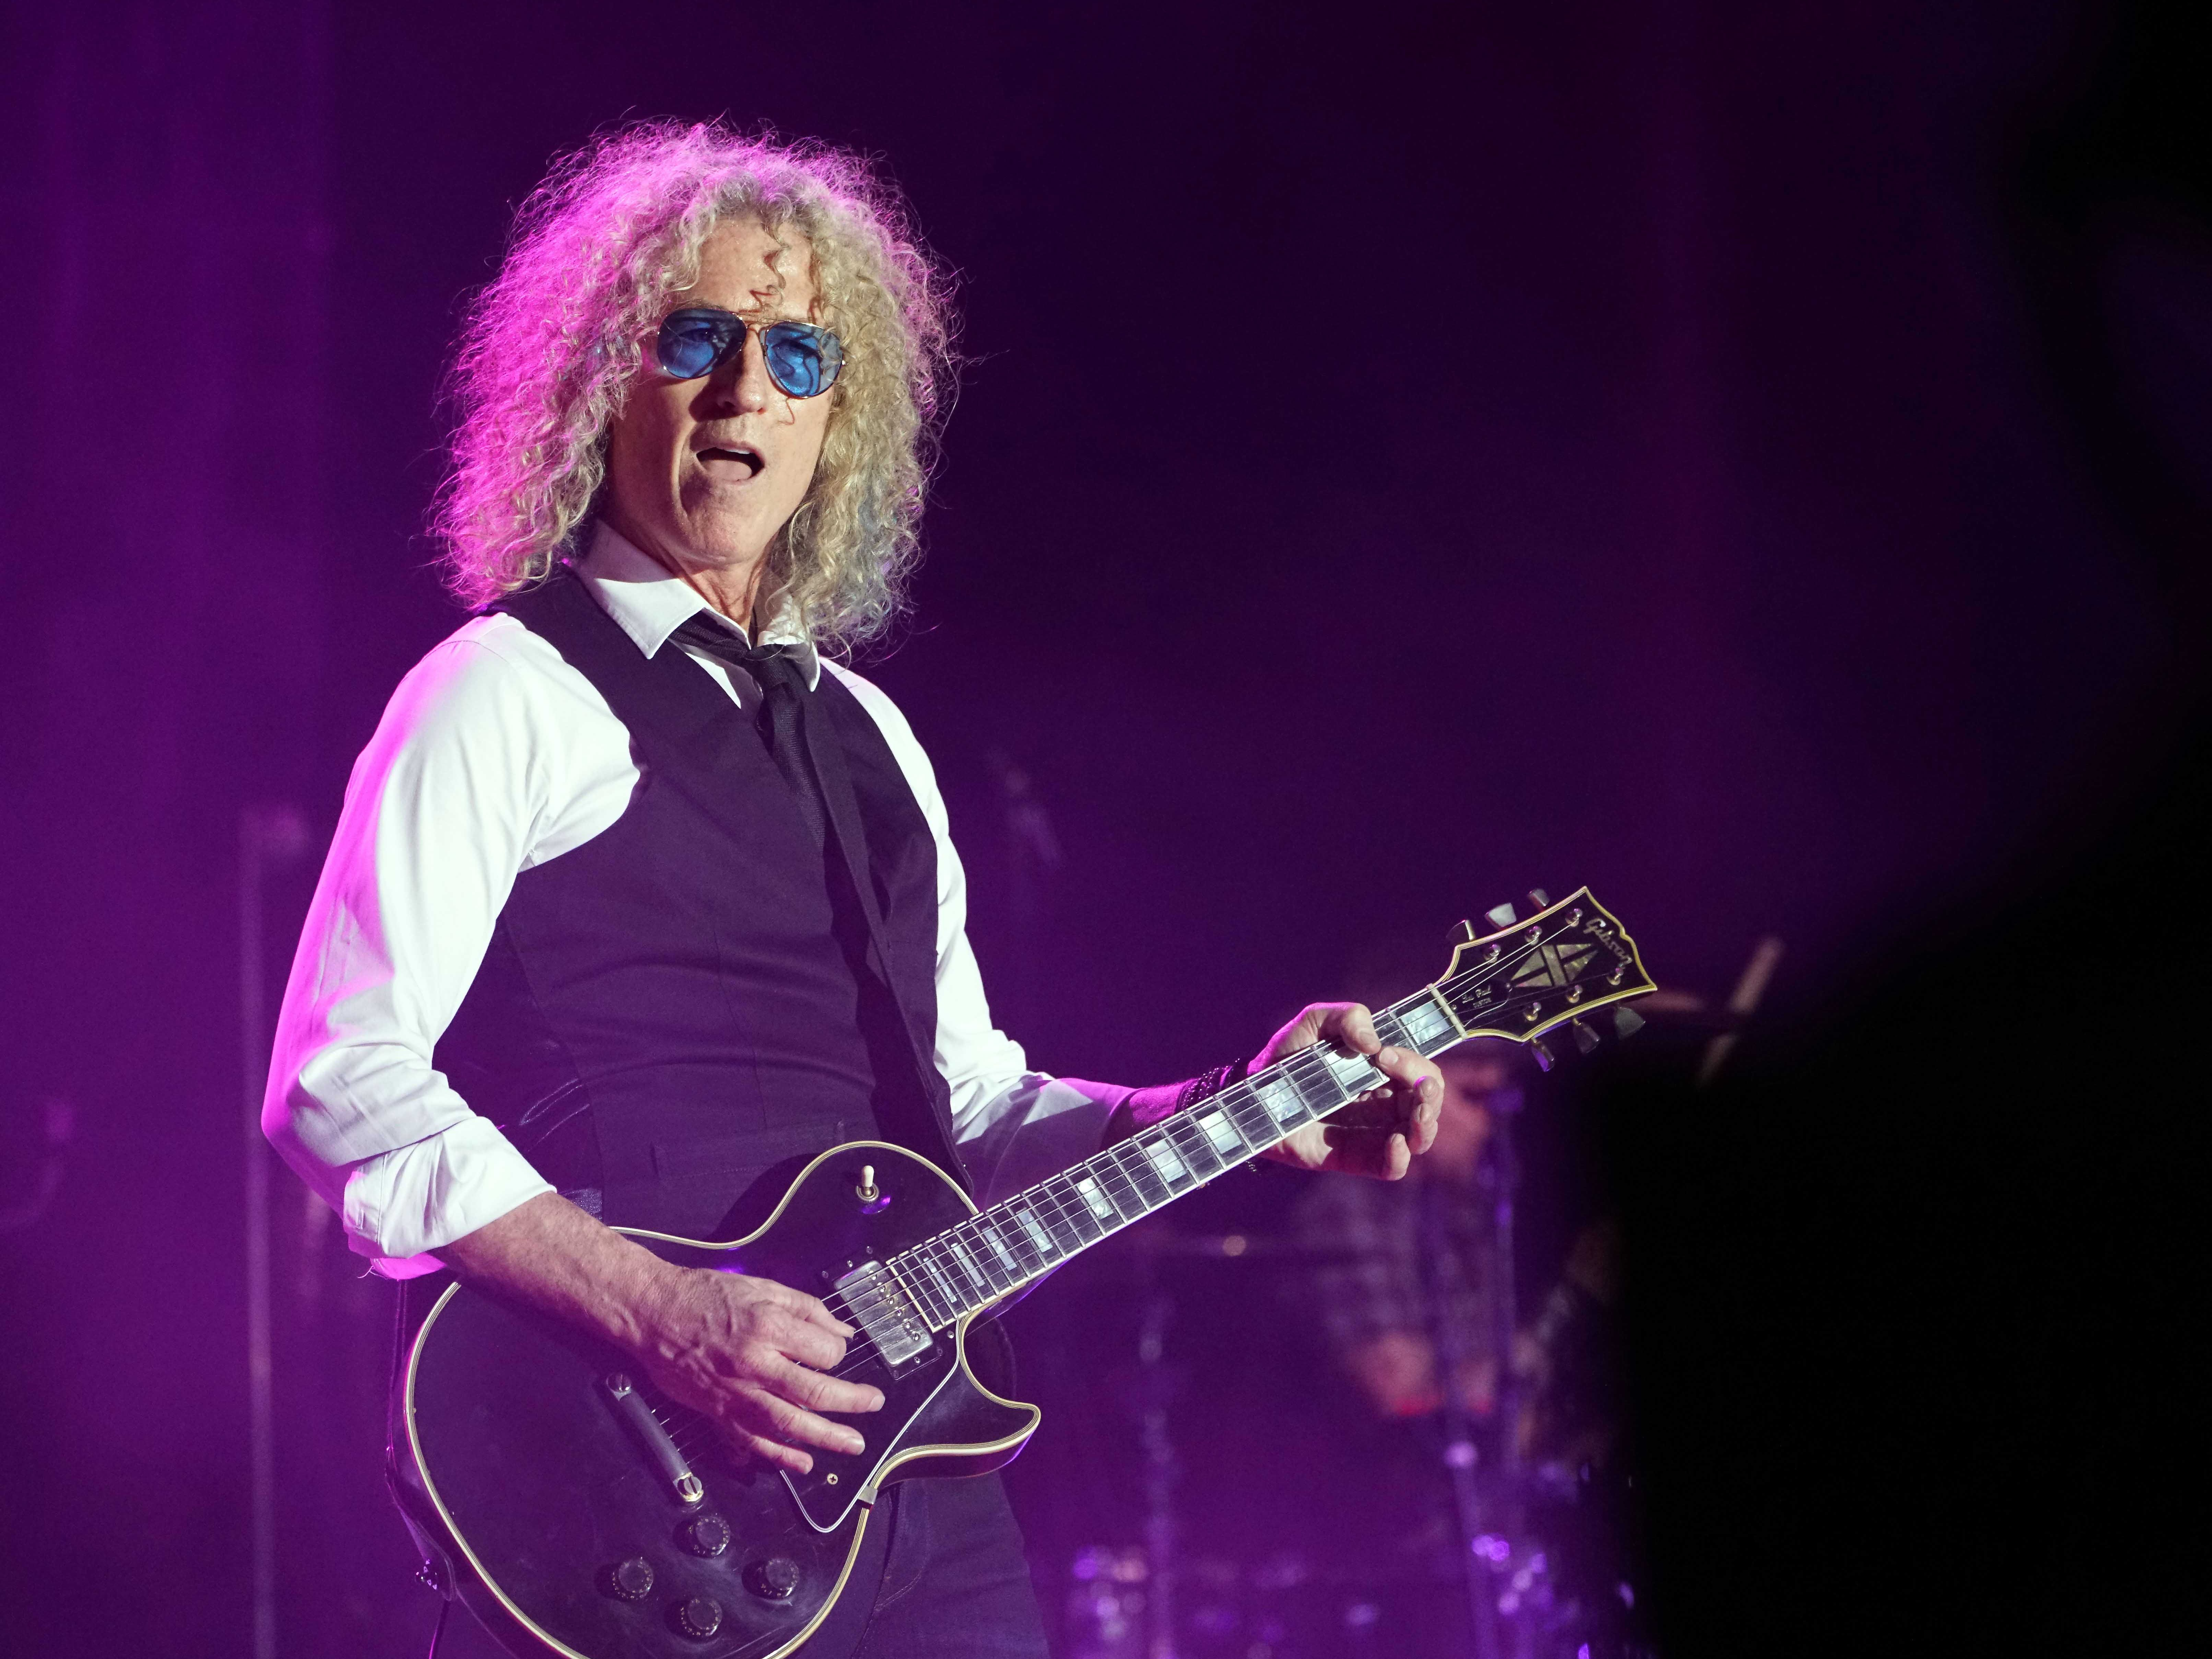 2018: Foreigner guitarist Bruce Watson performs during a show at the Buffalo Chip campground outside Sturgis.